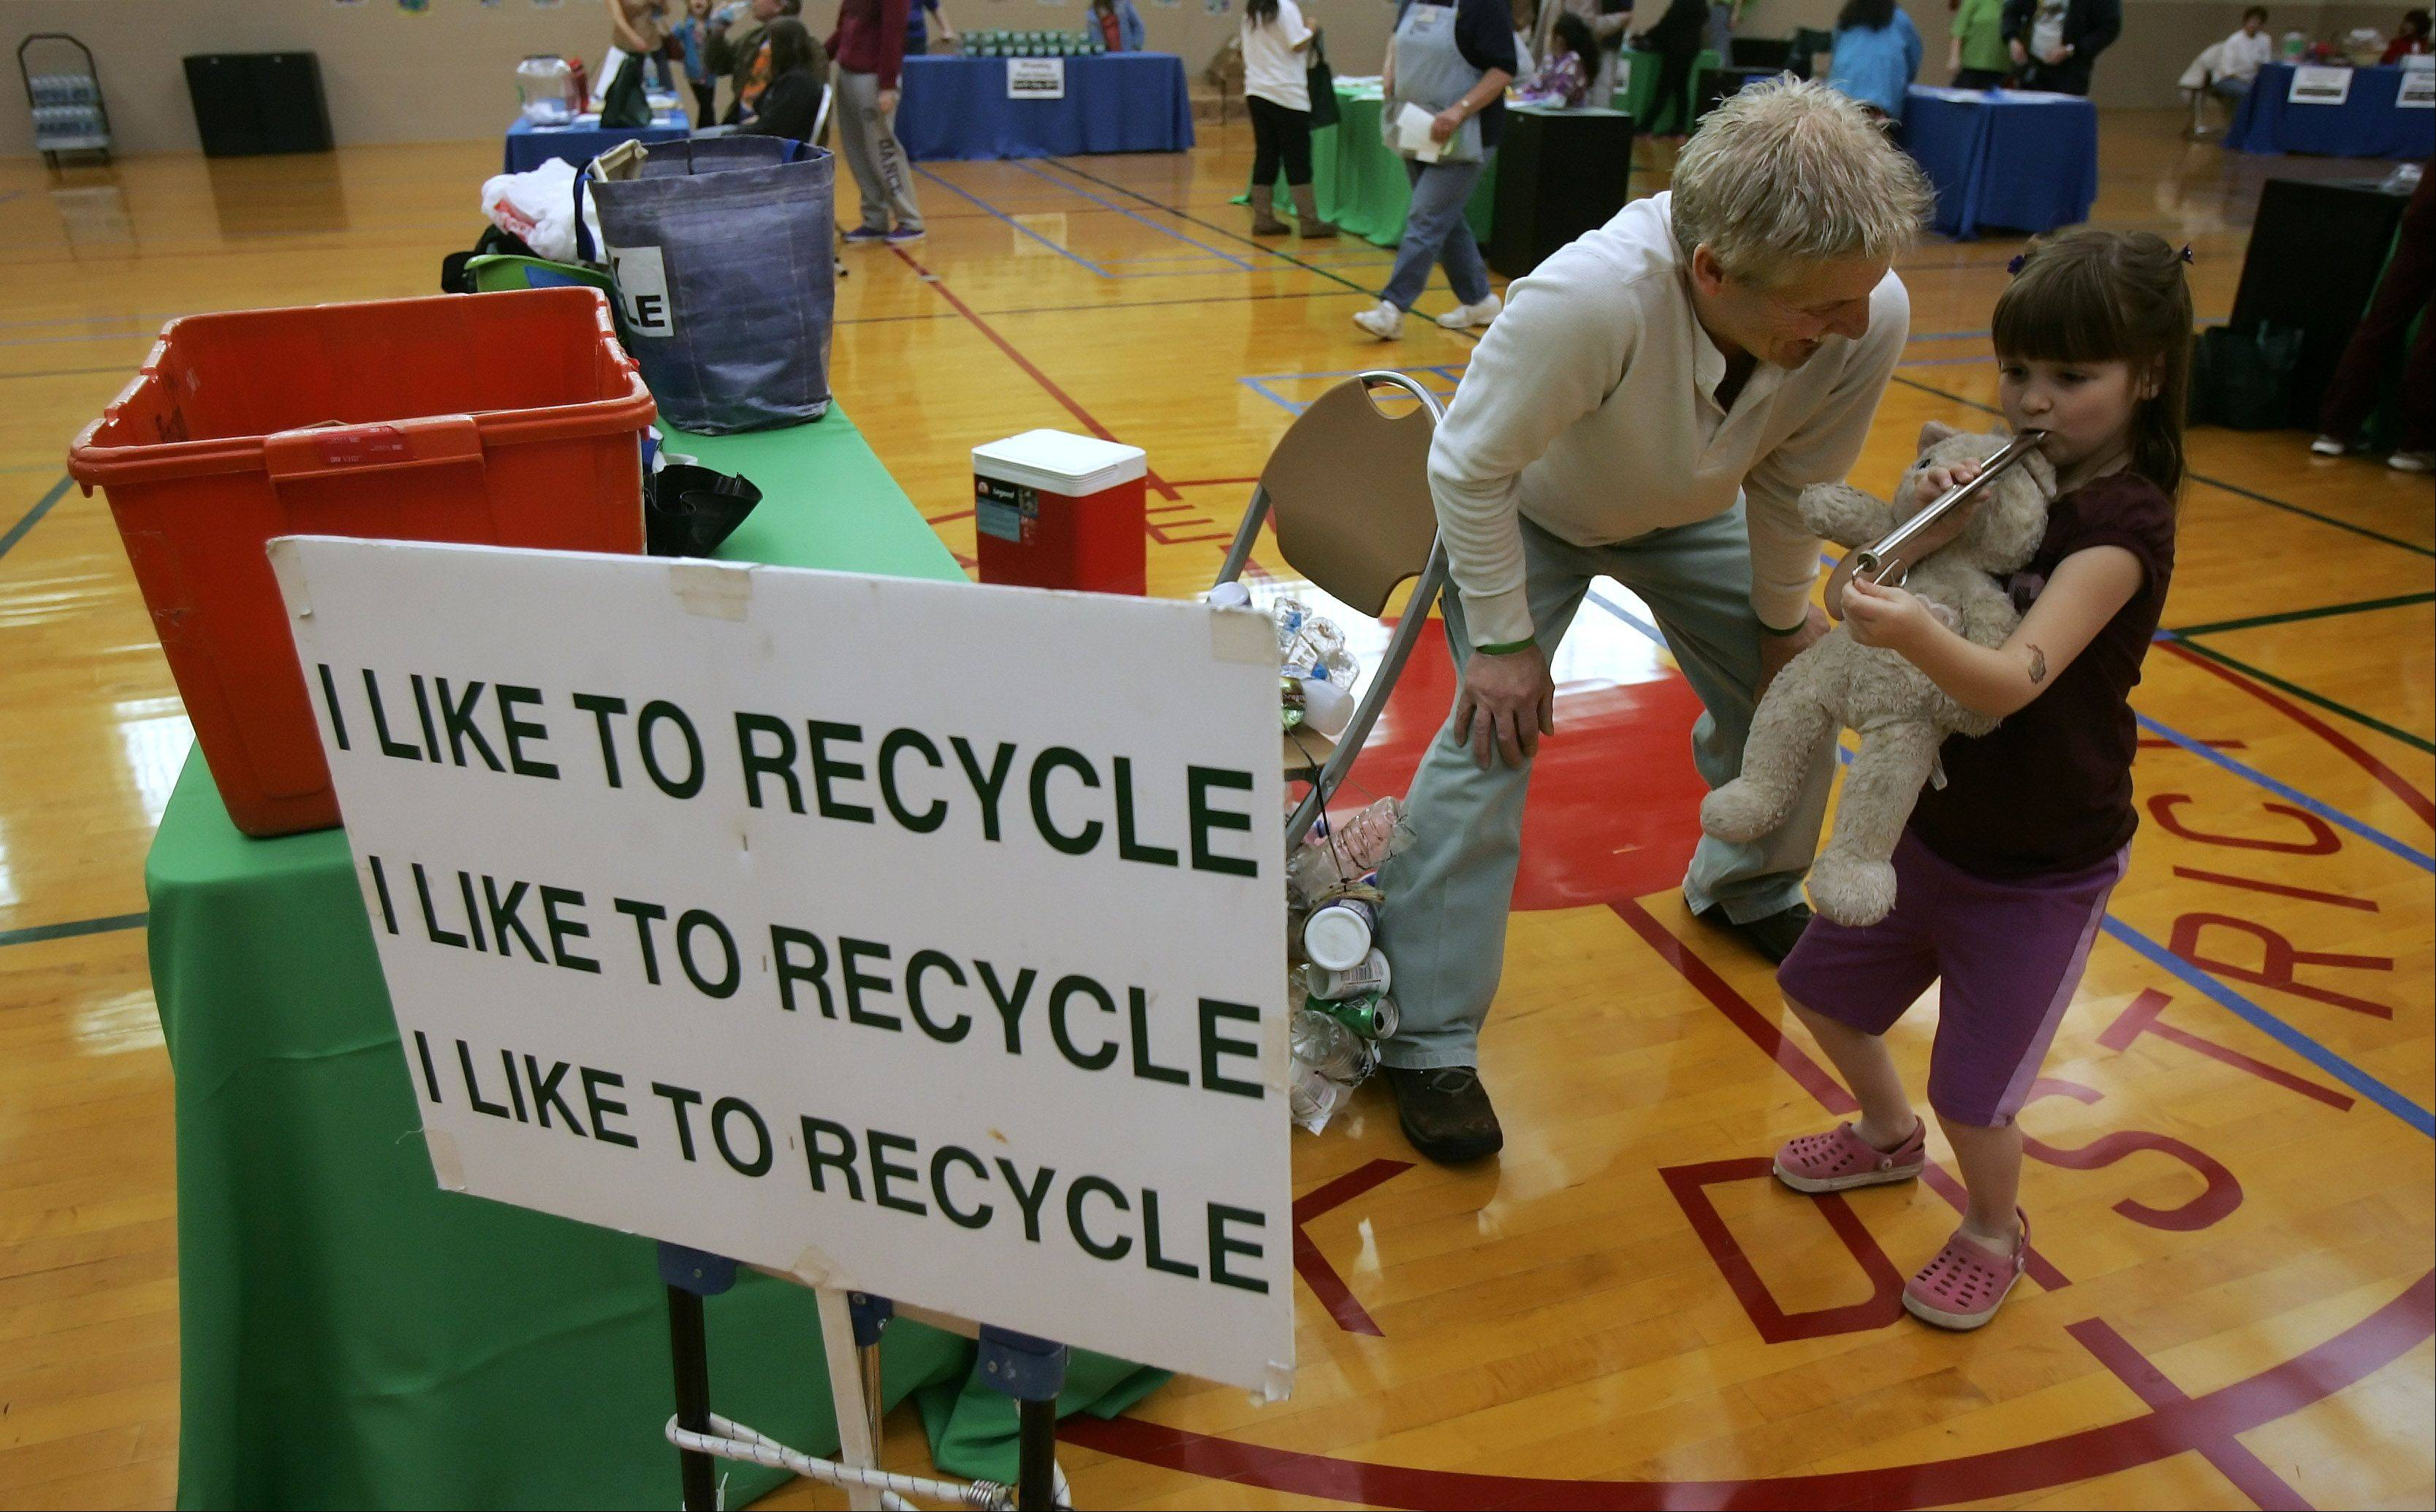 Ricky Recycle (Tom Pilurs) watches as Kathryn Murbach, 6, of Mount Prospect, plays a slide whistle during the Earth Day celebration Sunday at the Wheeling Park District. The event included kite making, seed planting, and story time activities.